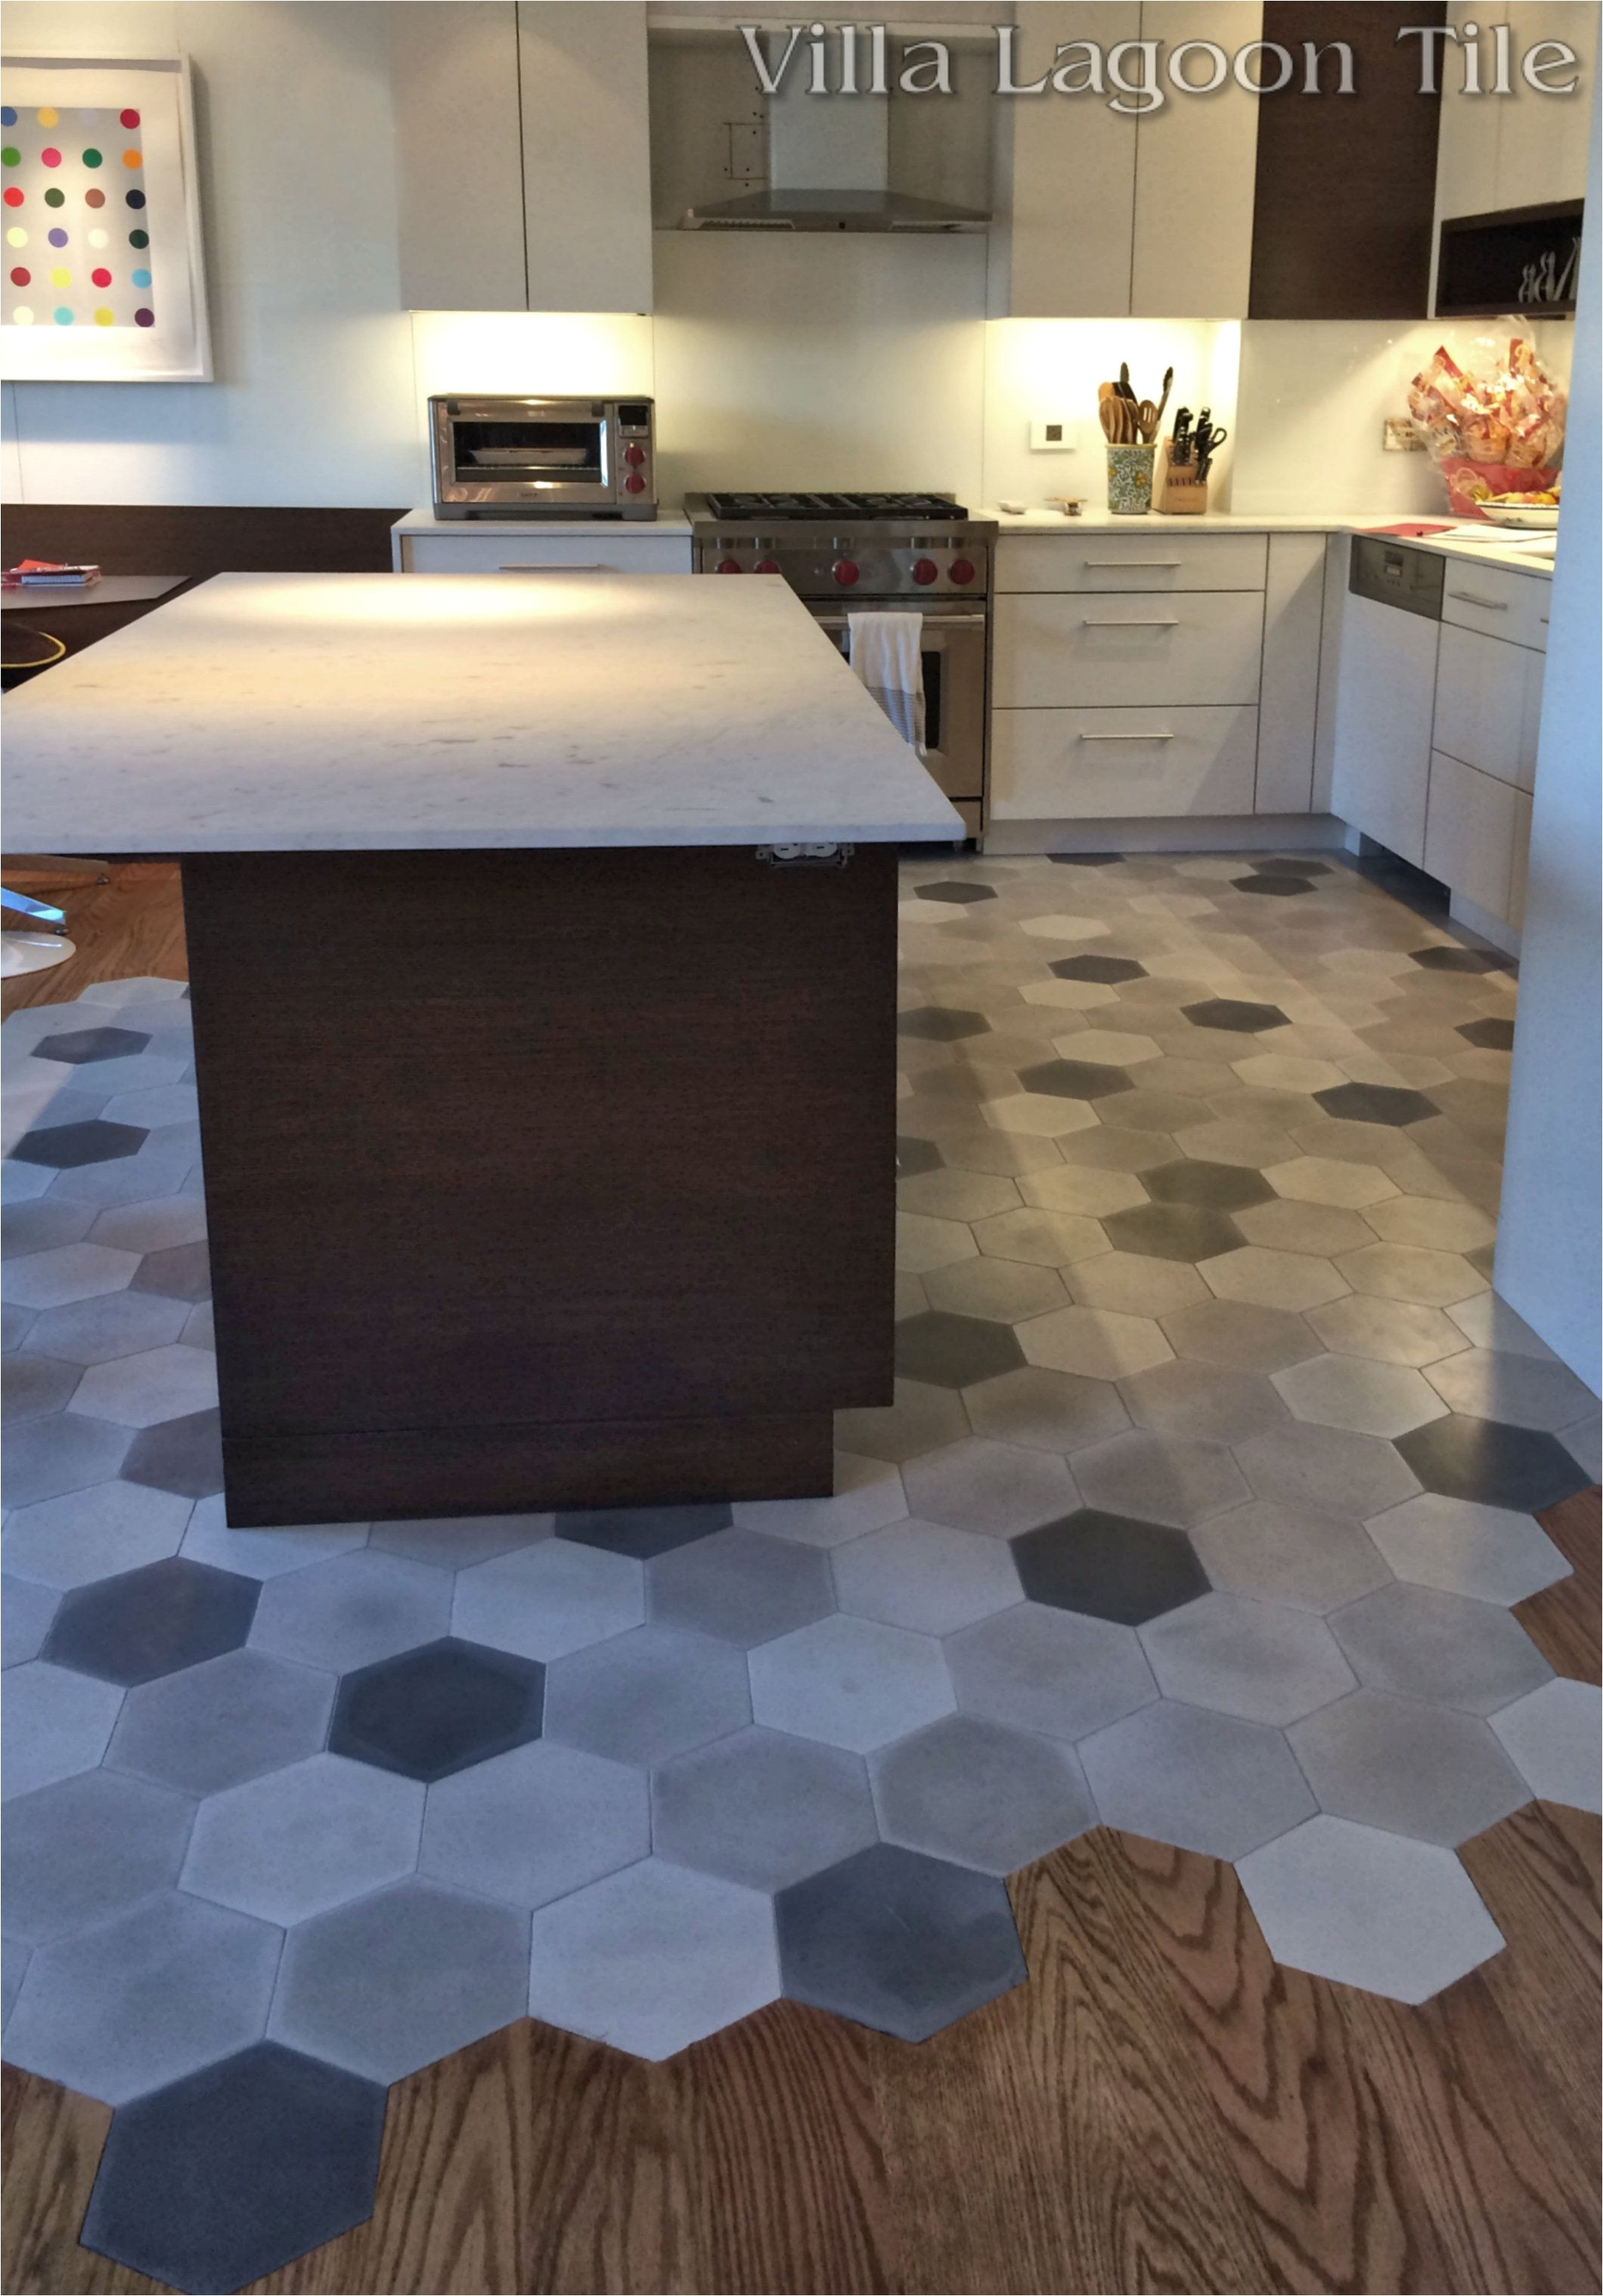 How to Install Herringbone Hardwood Floor Of Transitioning Different Color Wood Floors This Beautiful New York with Regard to Transitioning Different Color Wood Floors This Beautiful New York City Installation Flows Hardwood Floors Into